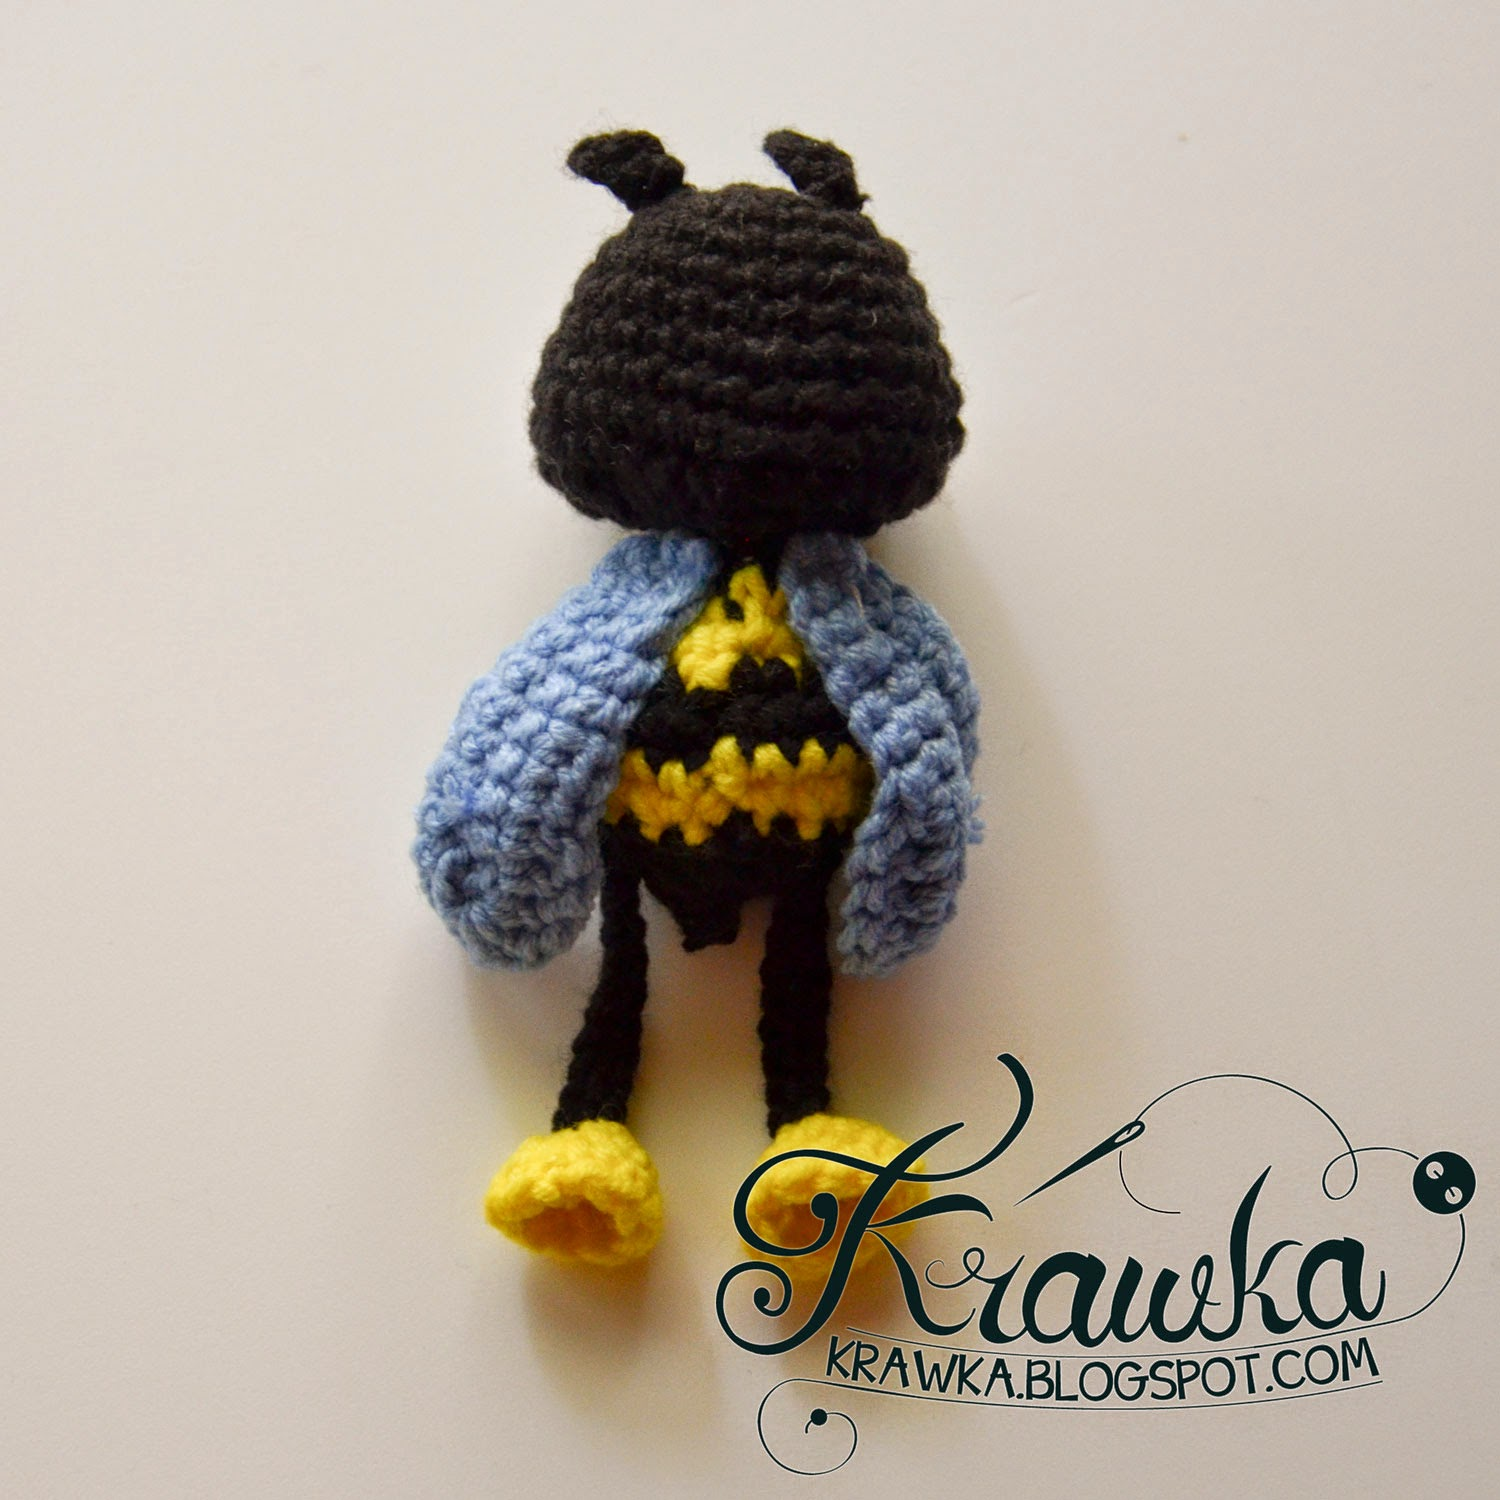 Potted plant decoration - Crochet bee on clothes pin for decoration. Free pattern